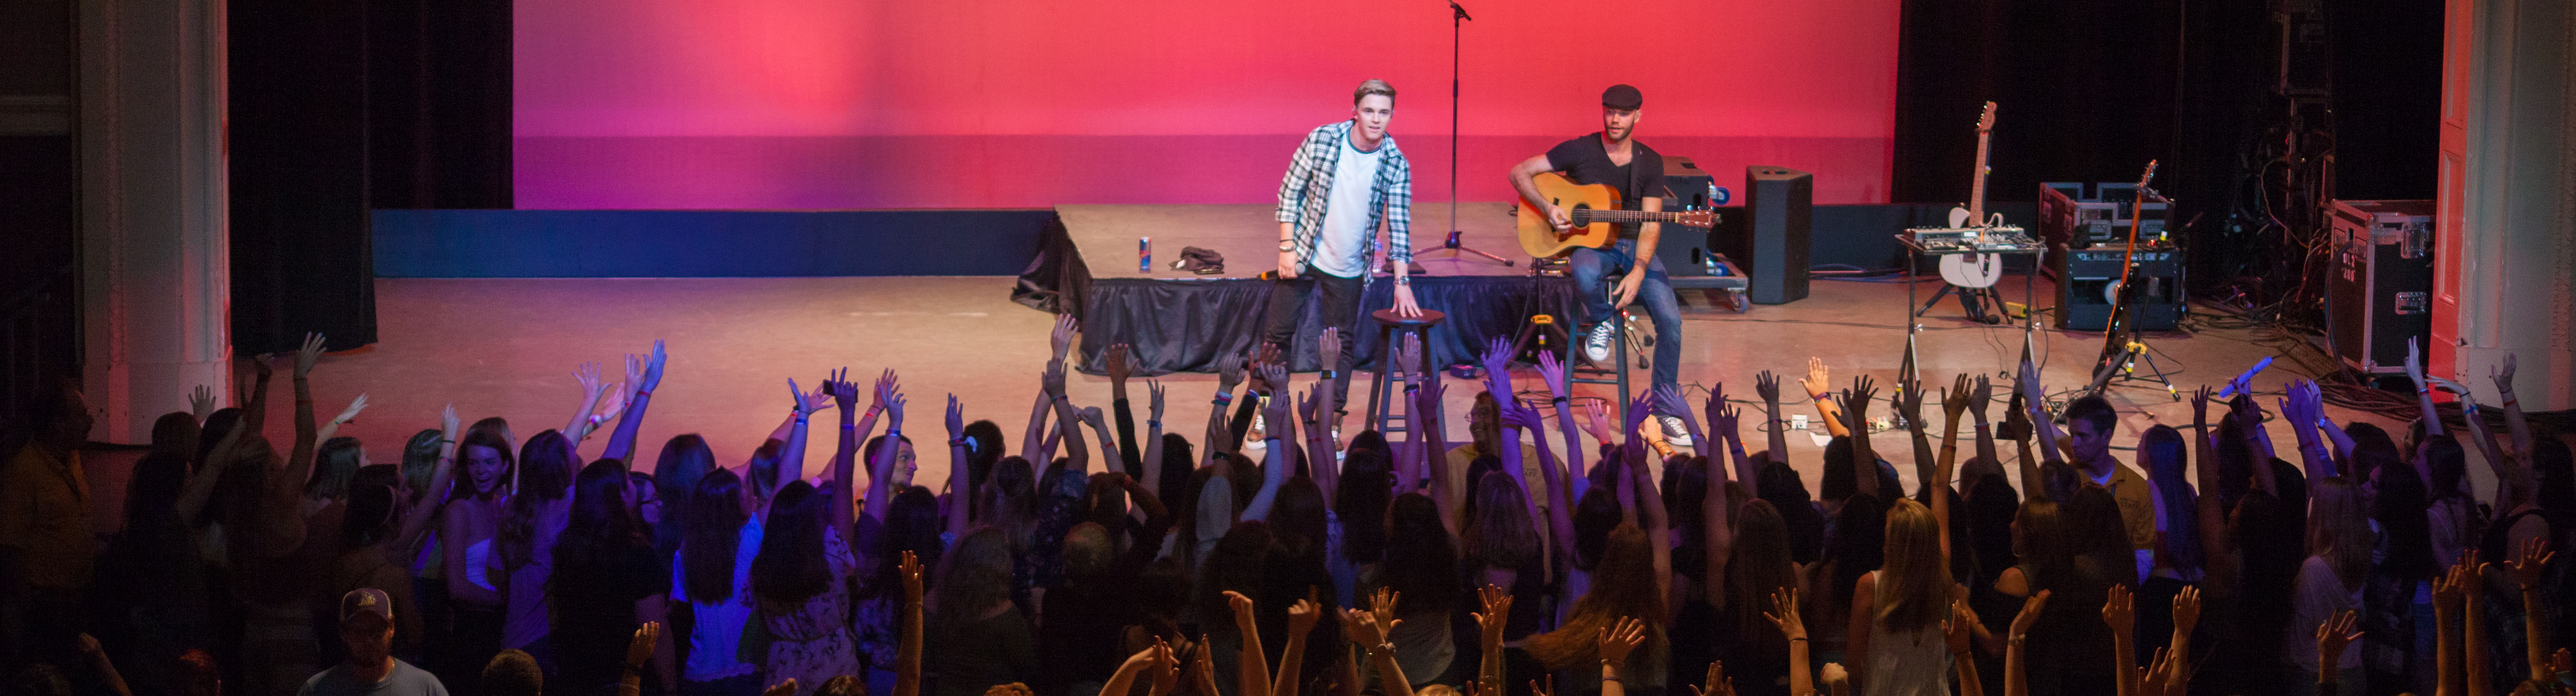 Jesse McCartney and another performer onstage for UPB in 2017